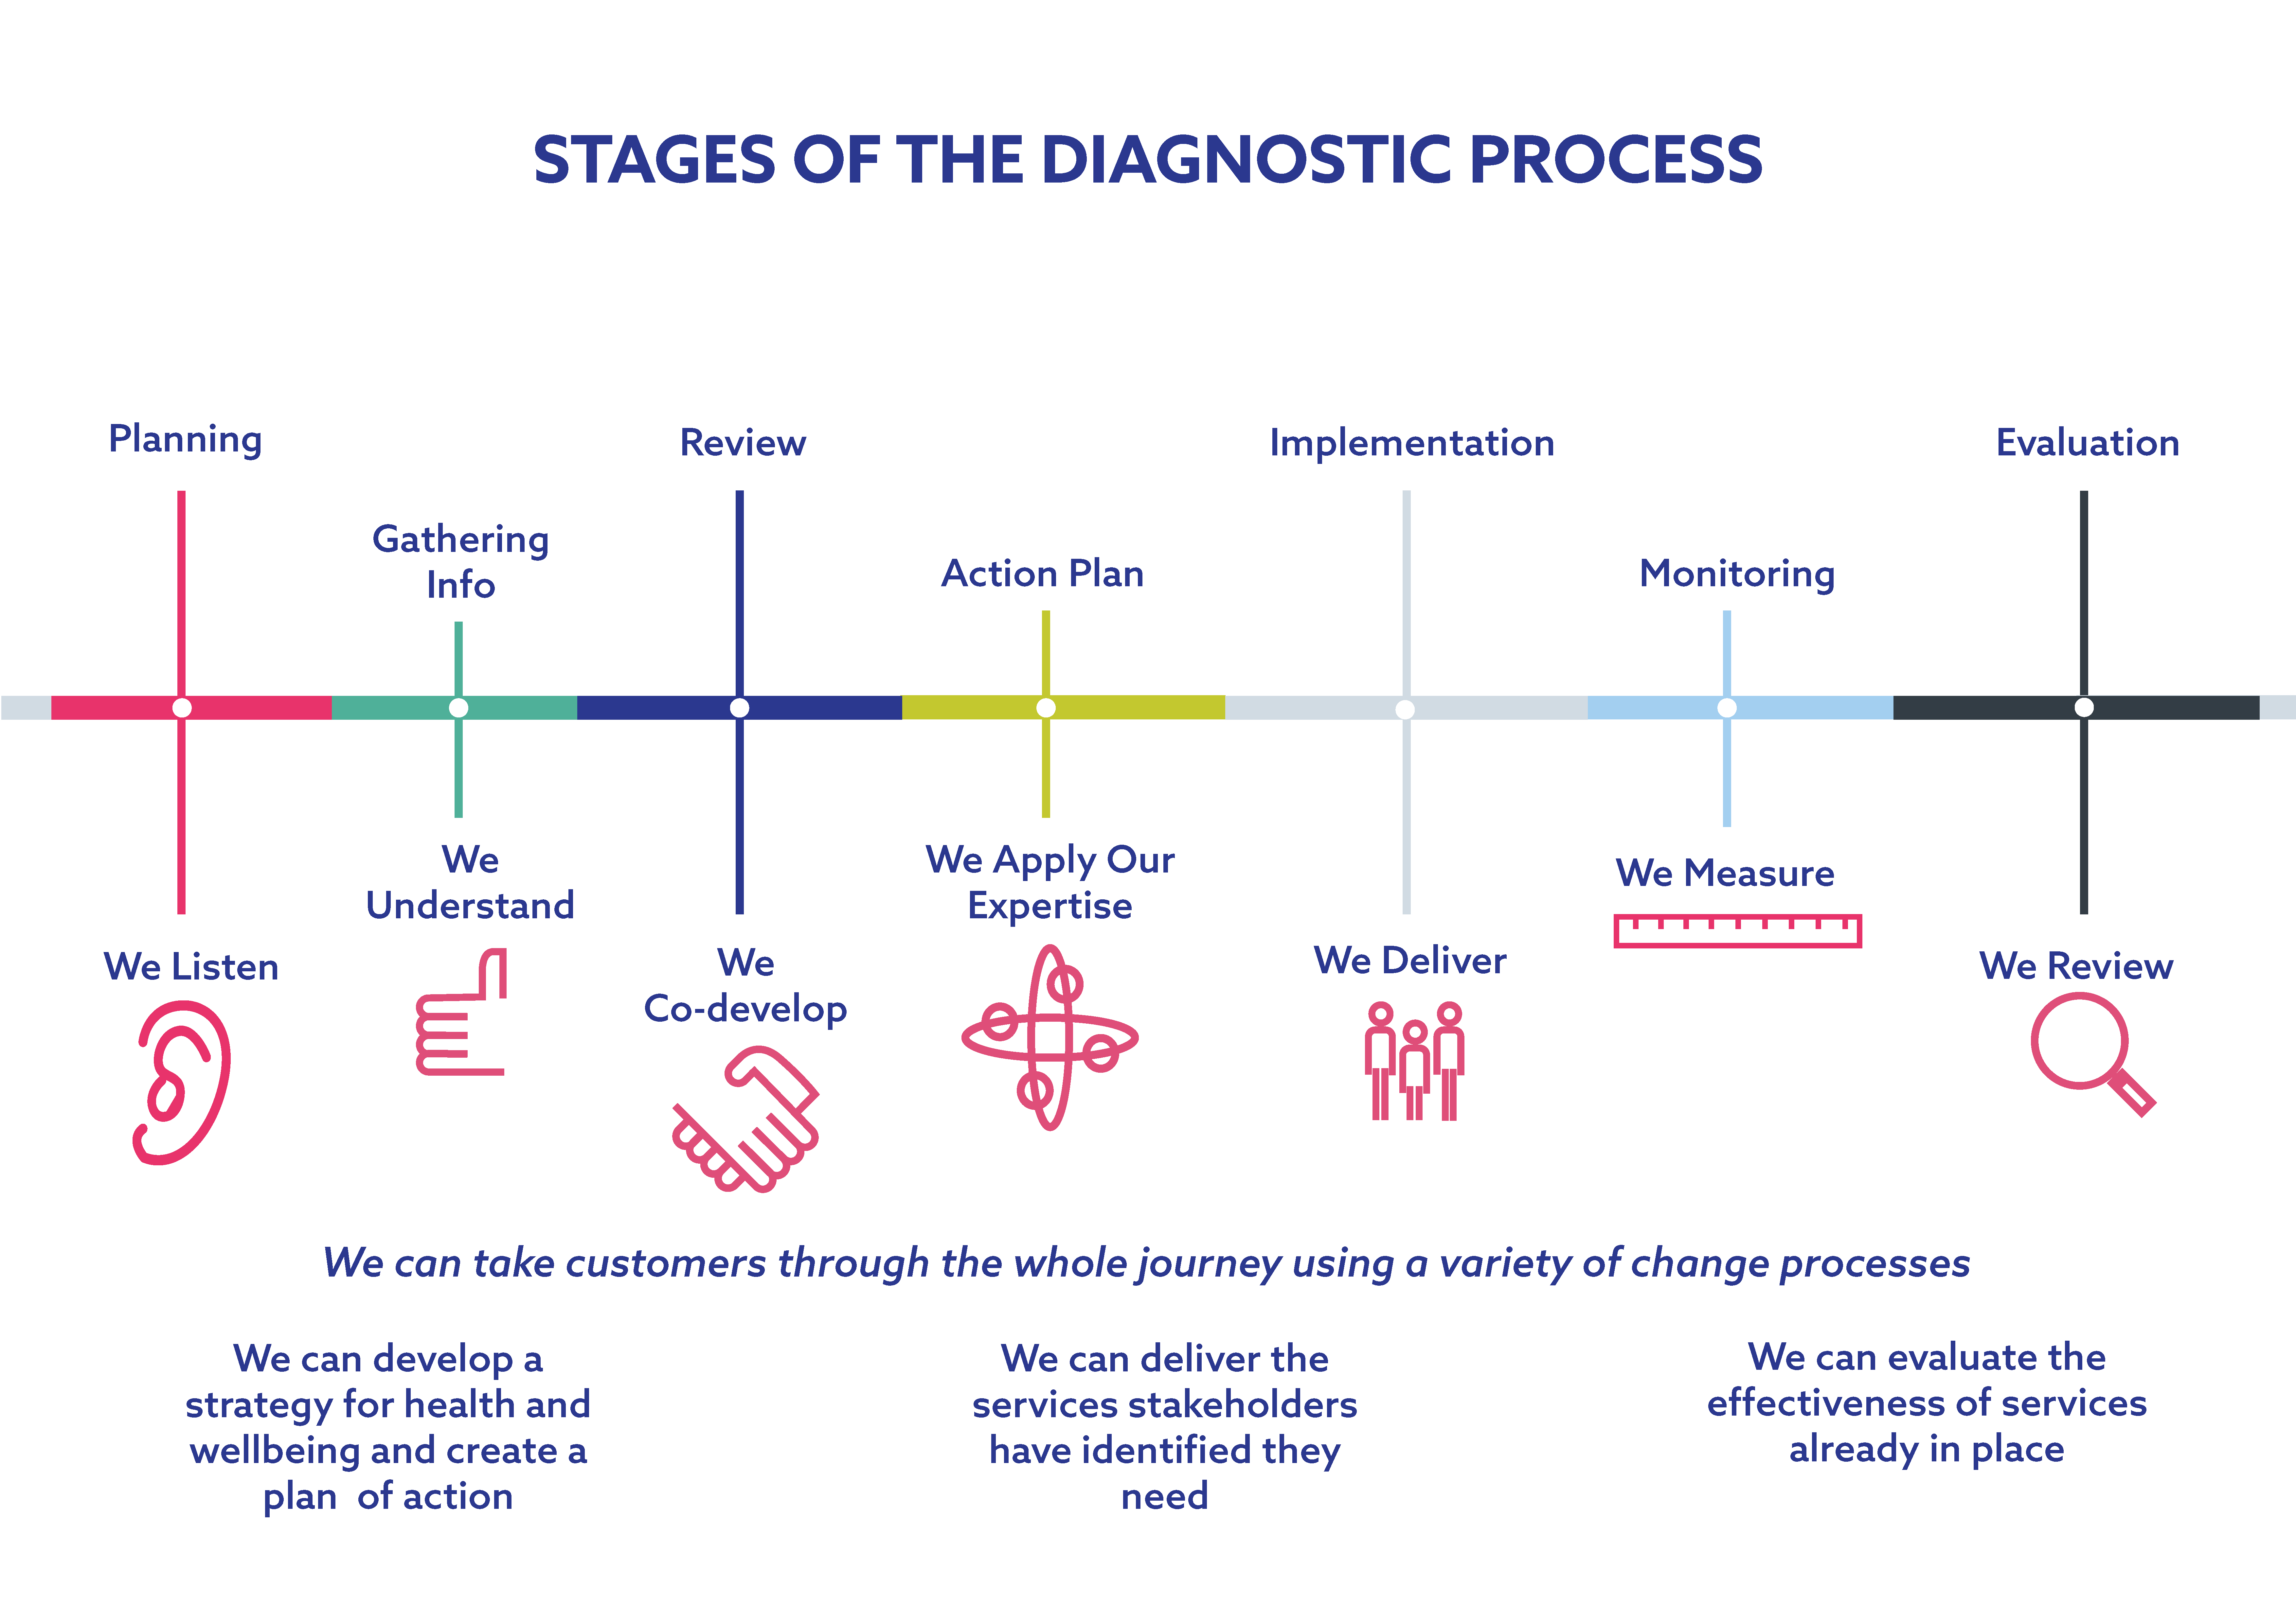 Stages of the Diagnostic Process